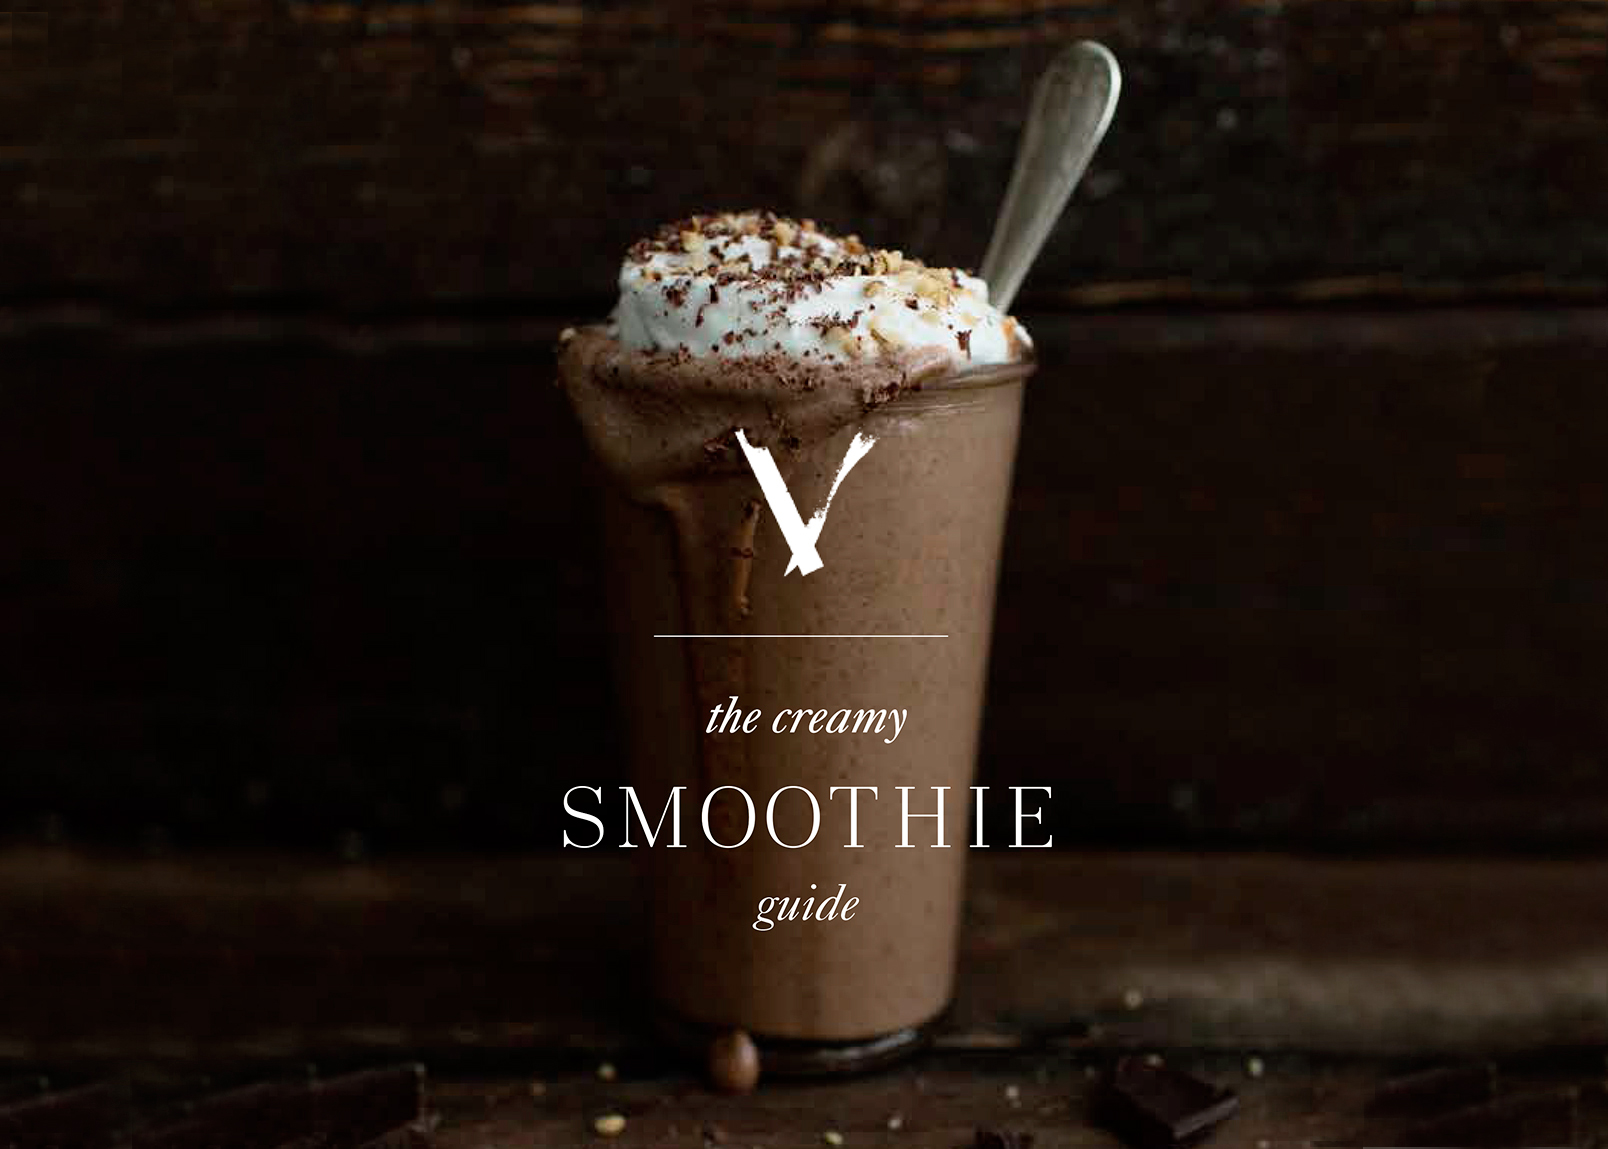 The Creamy Smoothie Guide